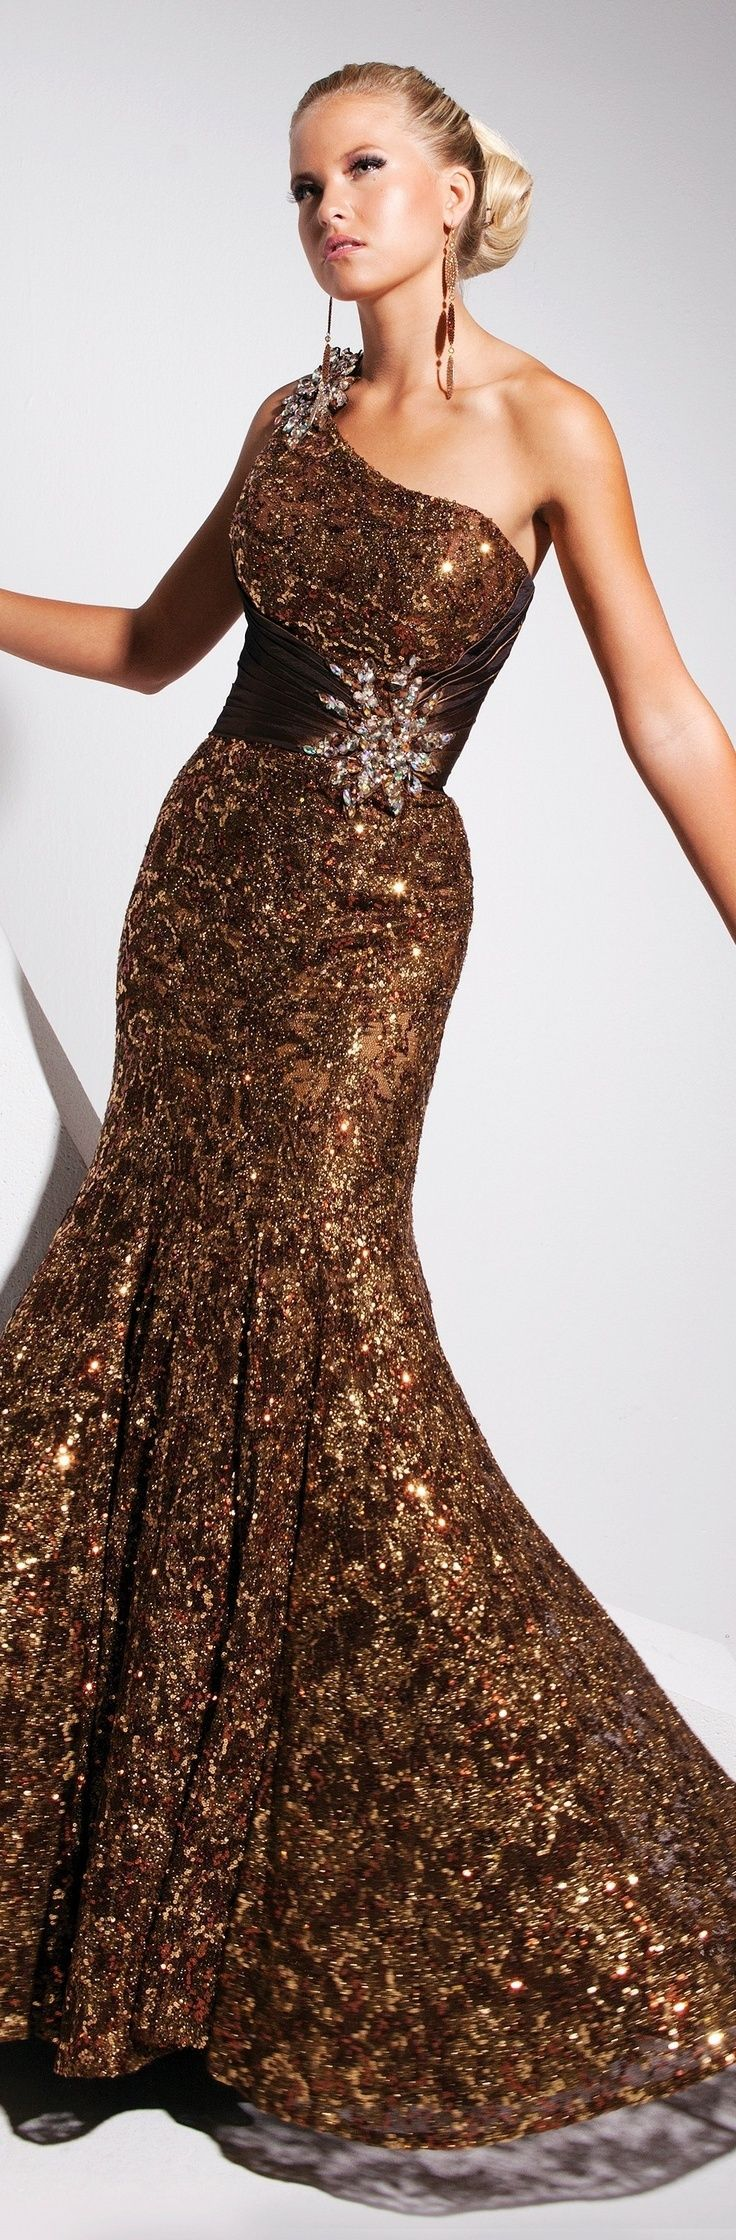 198 best gowns brown bronze images on pinterest clothes brown bronze dress ombrellifo Gallery